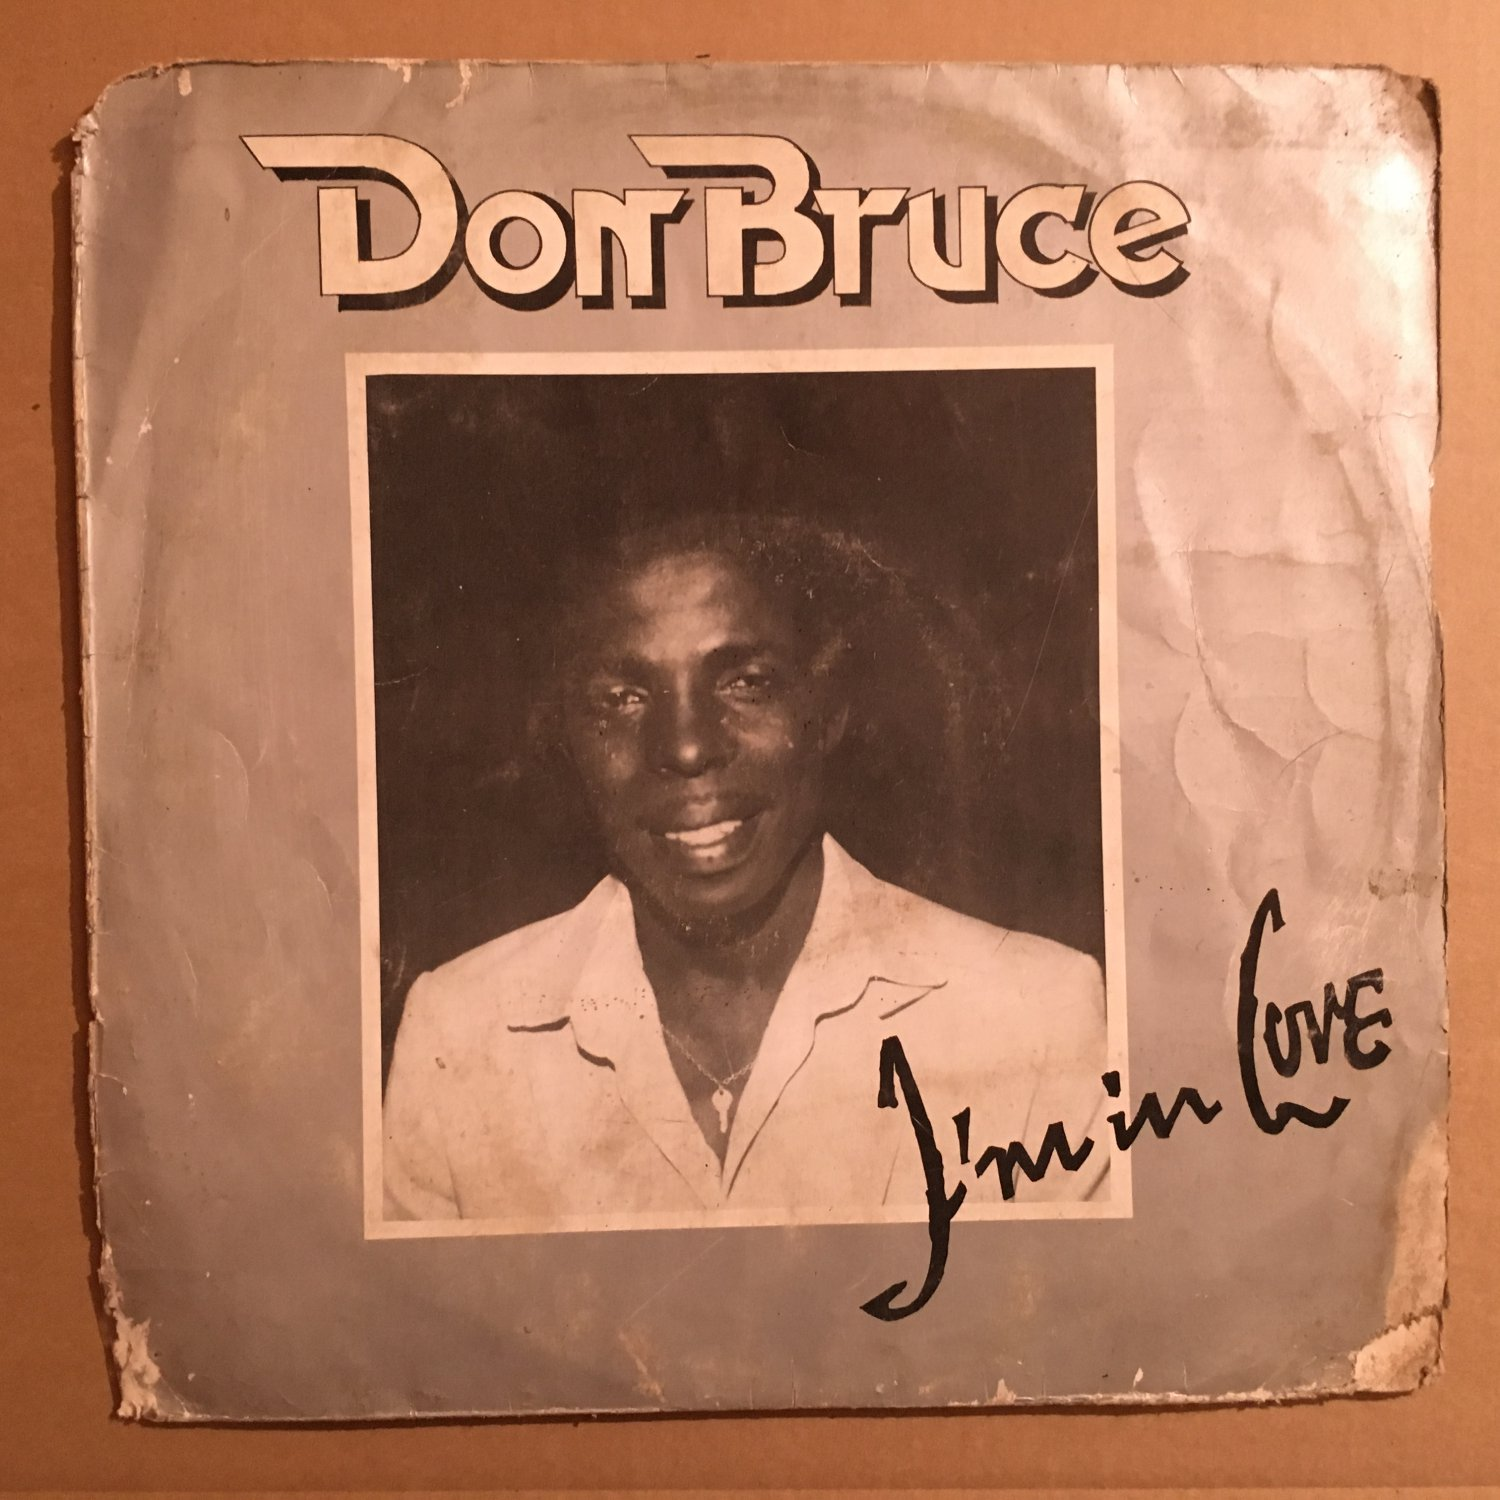 DON BRUCE LP i'm in love NIGERIA AFRO BOOGIE DISCO FUNK REGGAE mp3 LISTEN